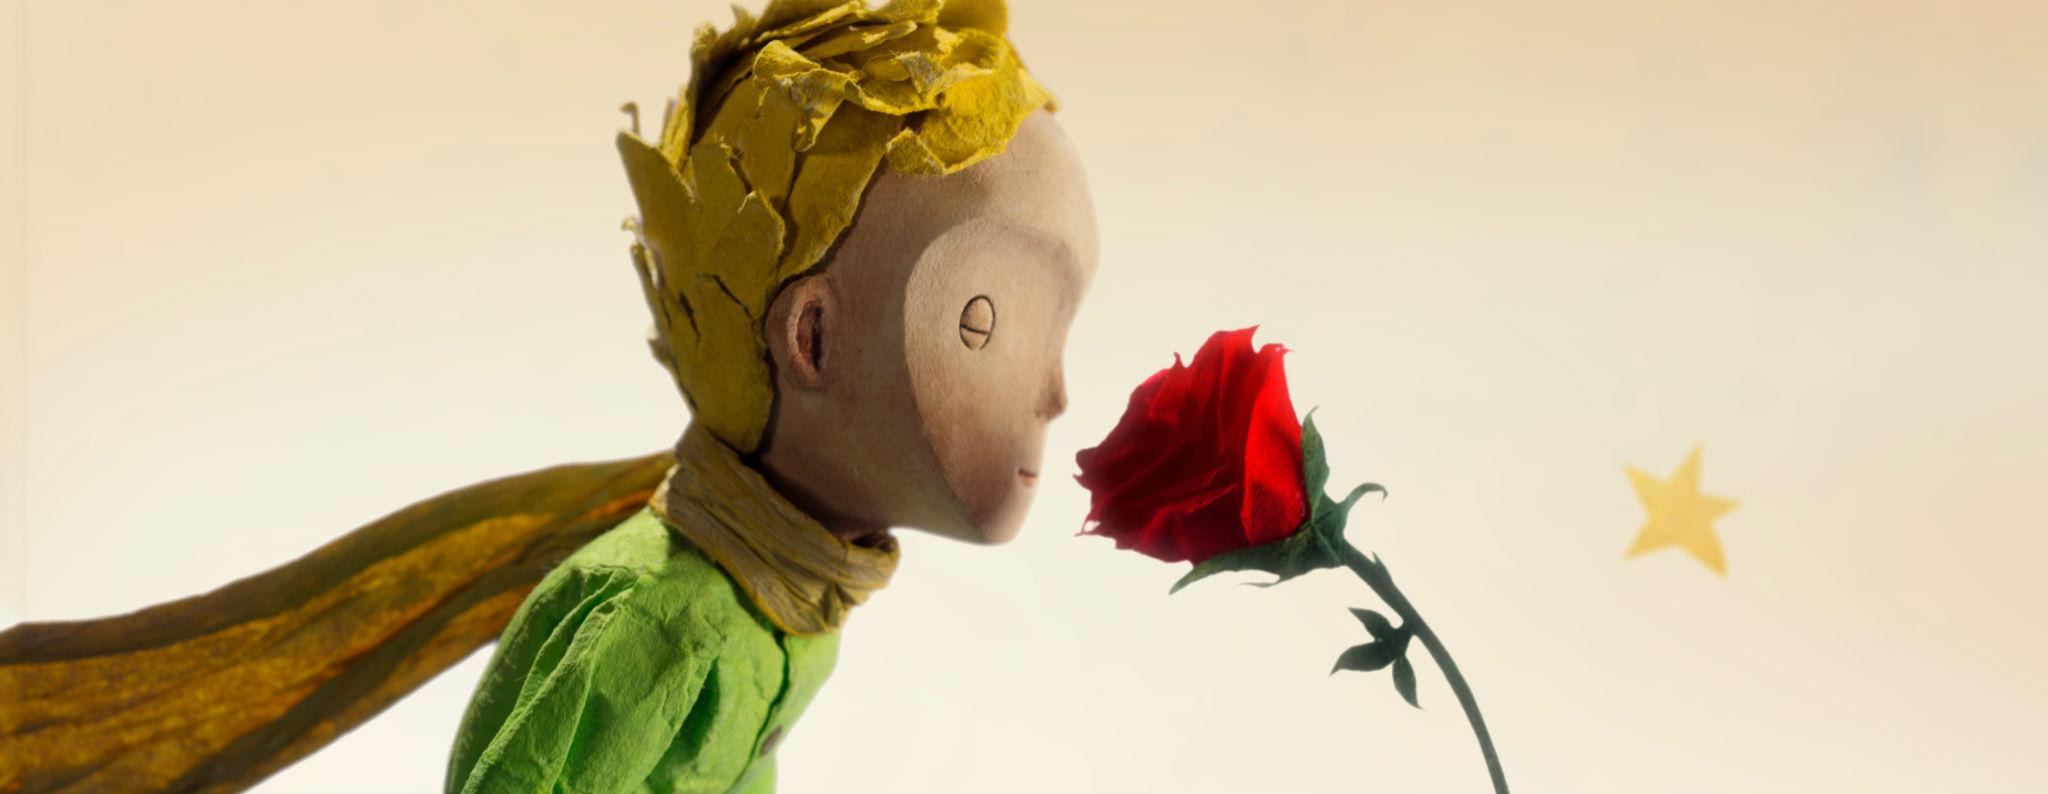 the-rose-the-little-prince